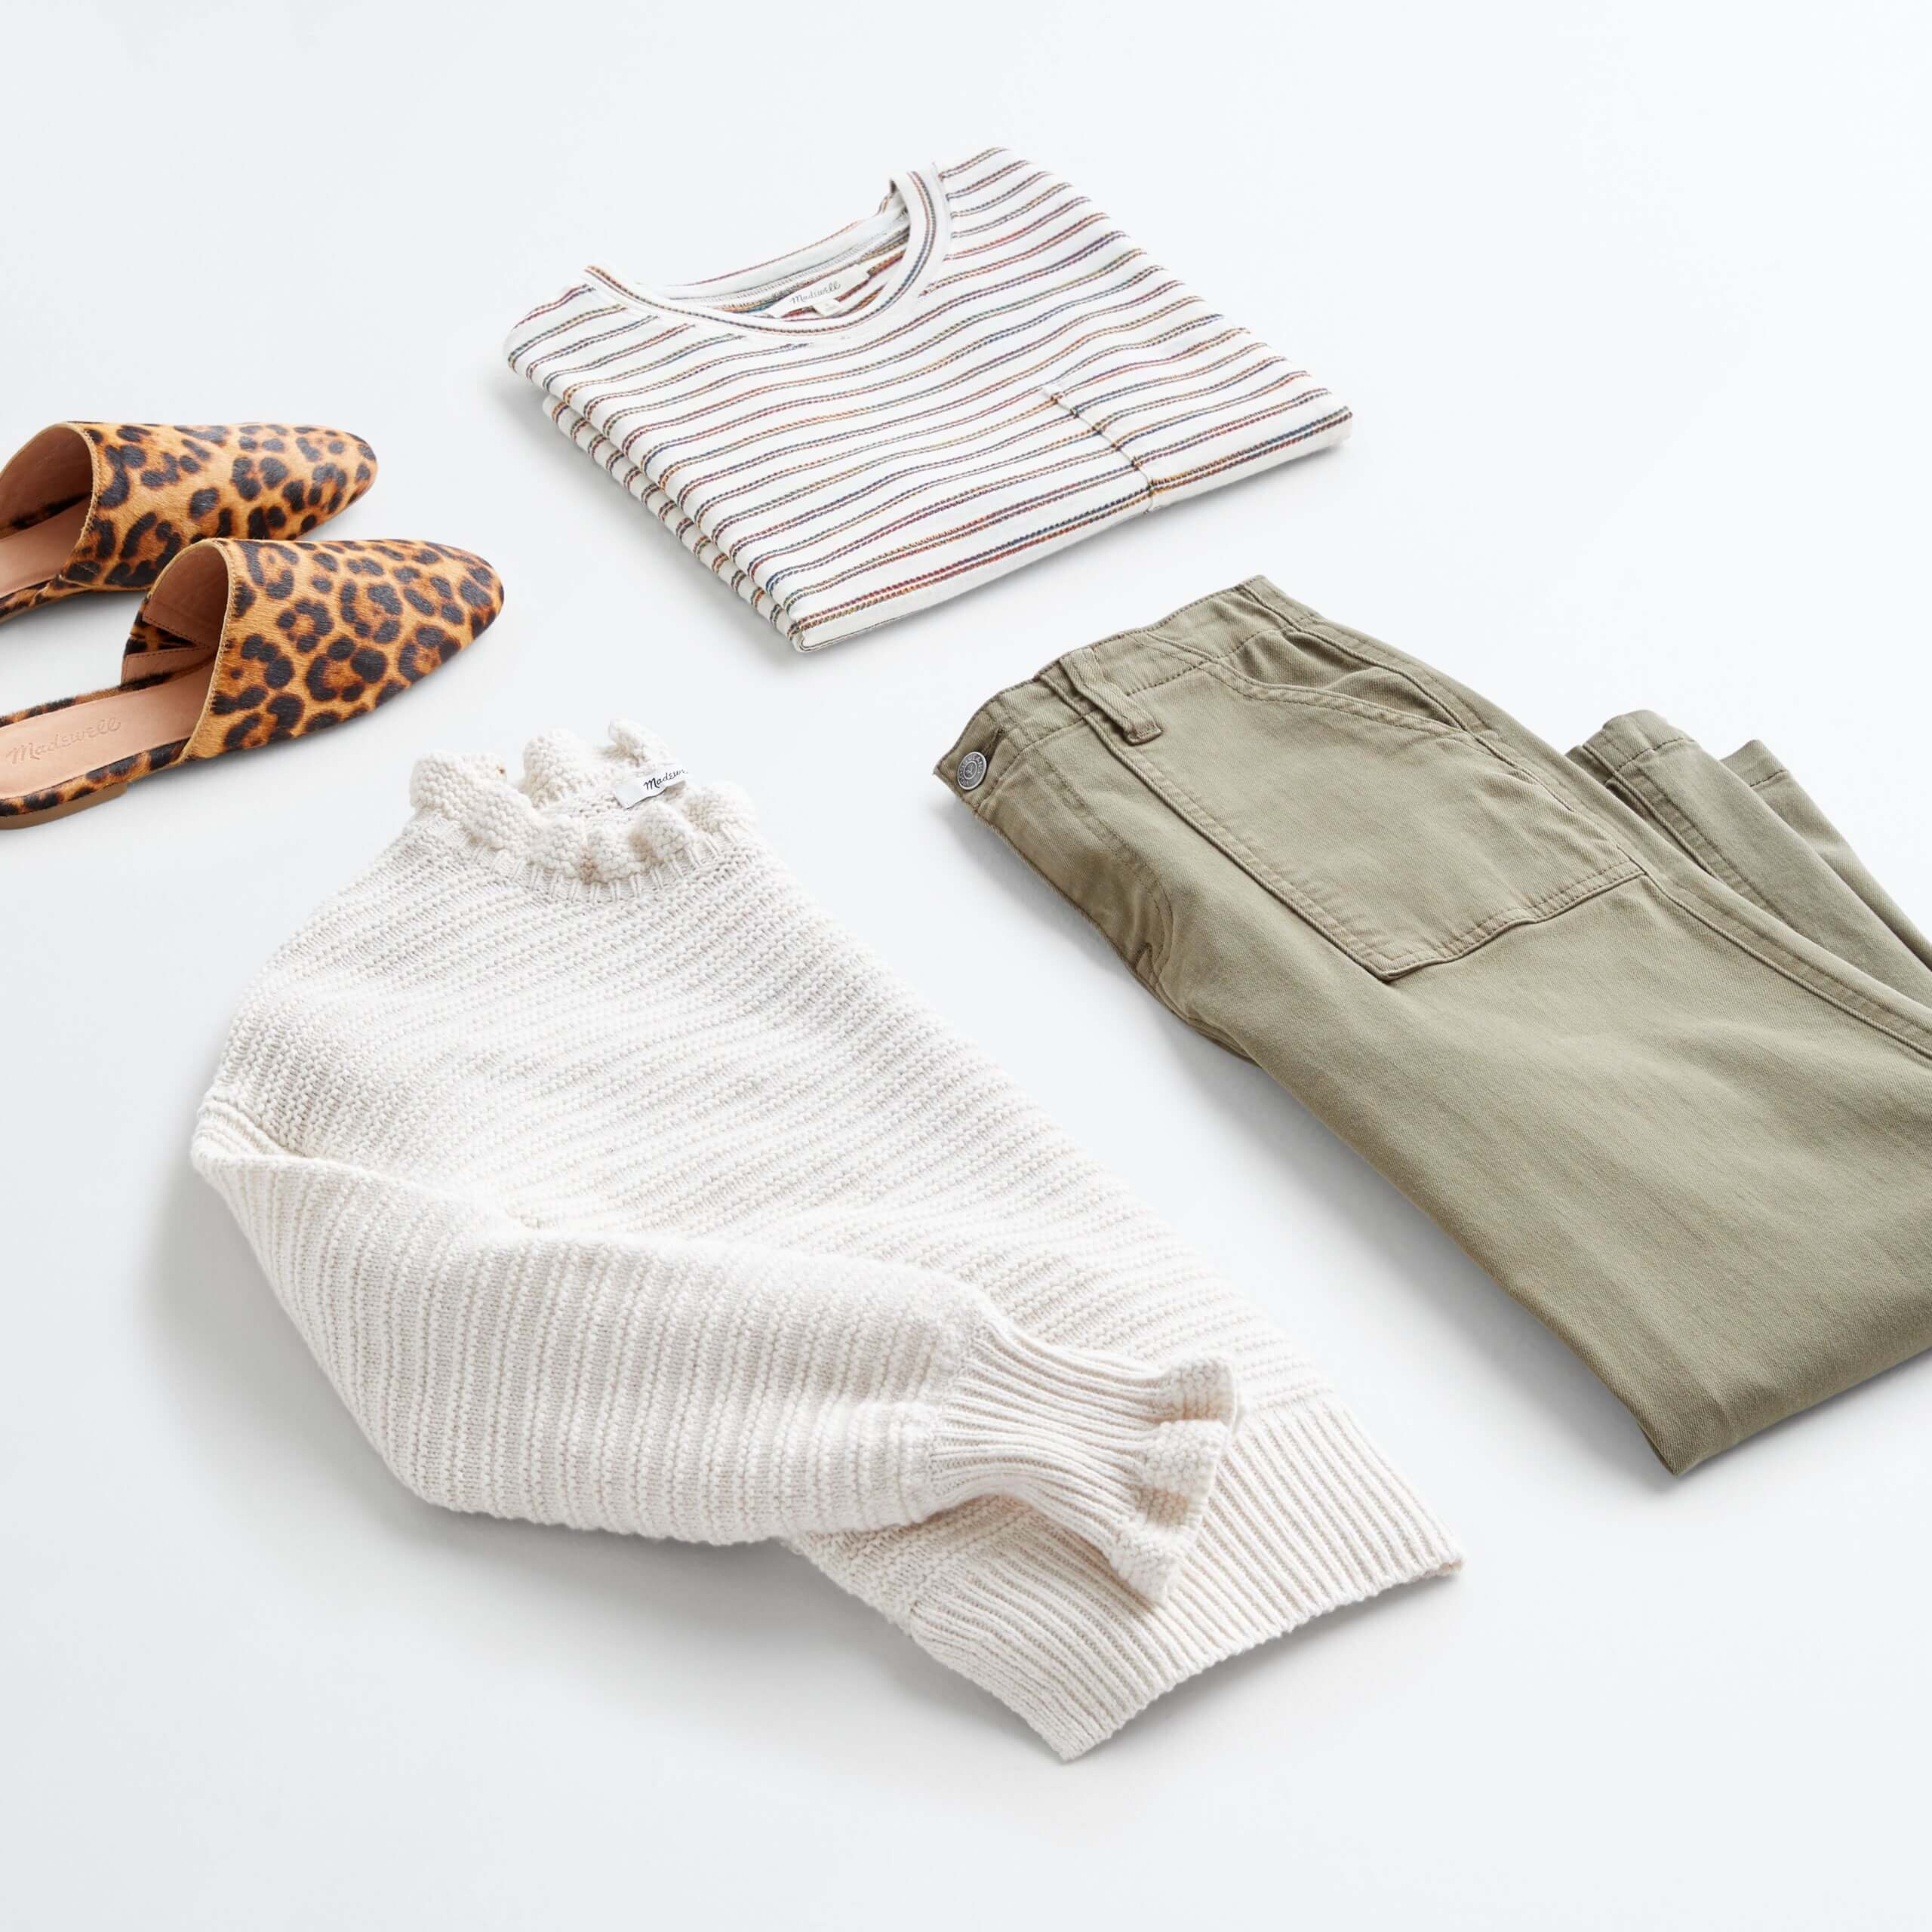 Stitch Fix Women's outfit laydown featuring olive utility pants, beige pullover sweater, striped tee and animal-print slide-on flats.